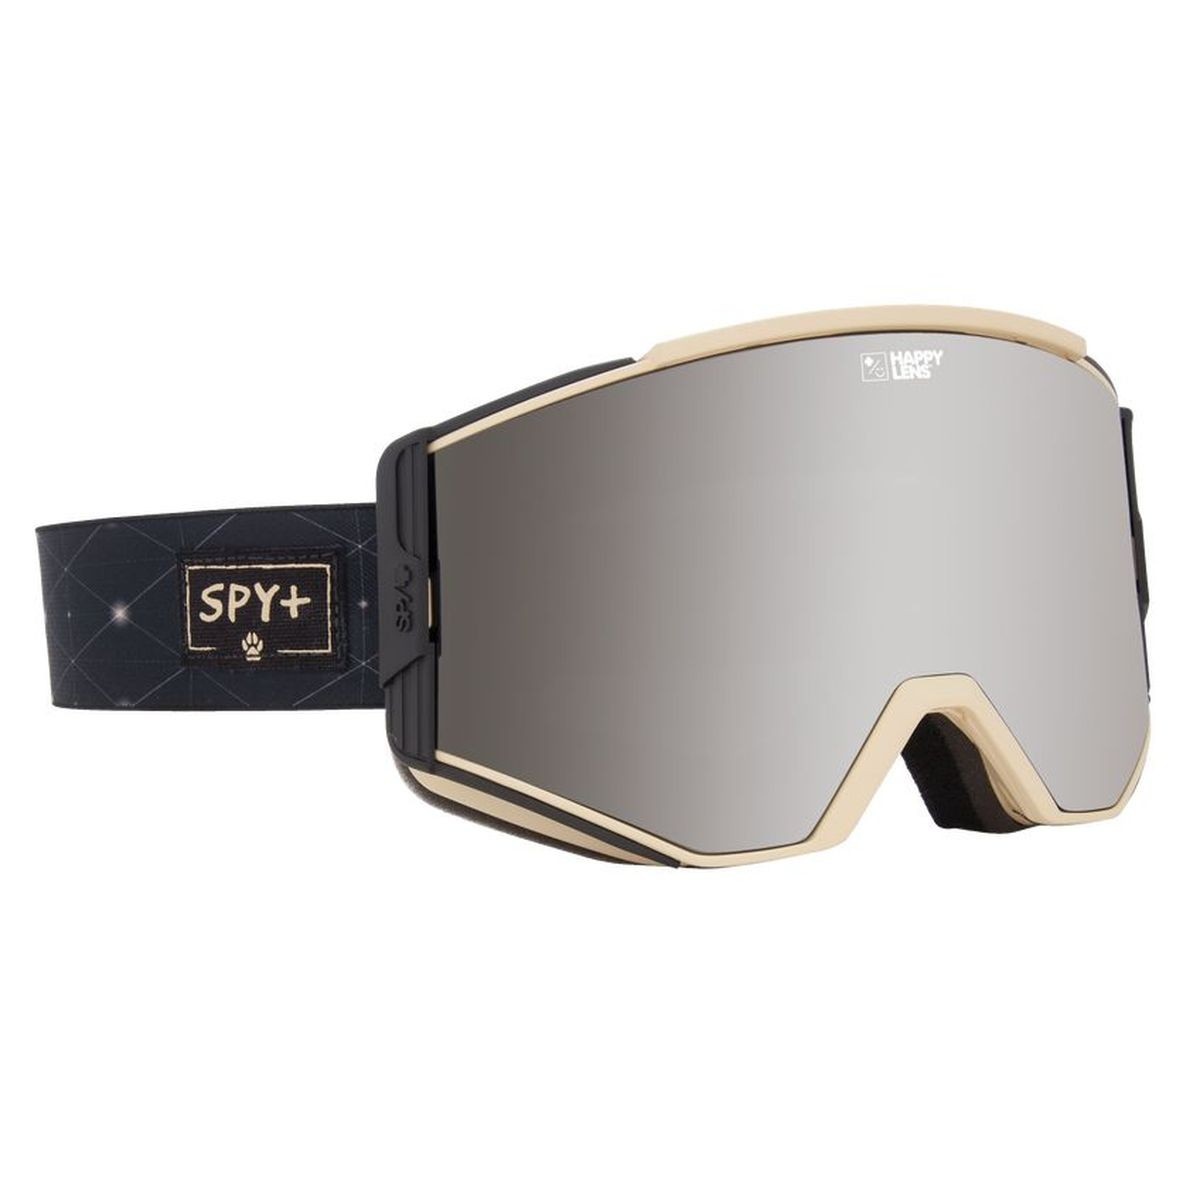 8ccd8c209ee spy-ace-realtree-snowboard-goggles-happy-bronze-with-silver-spectra -1.1506693624.jpg